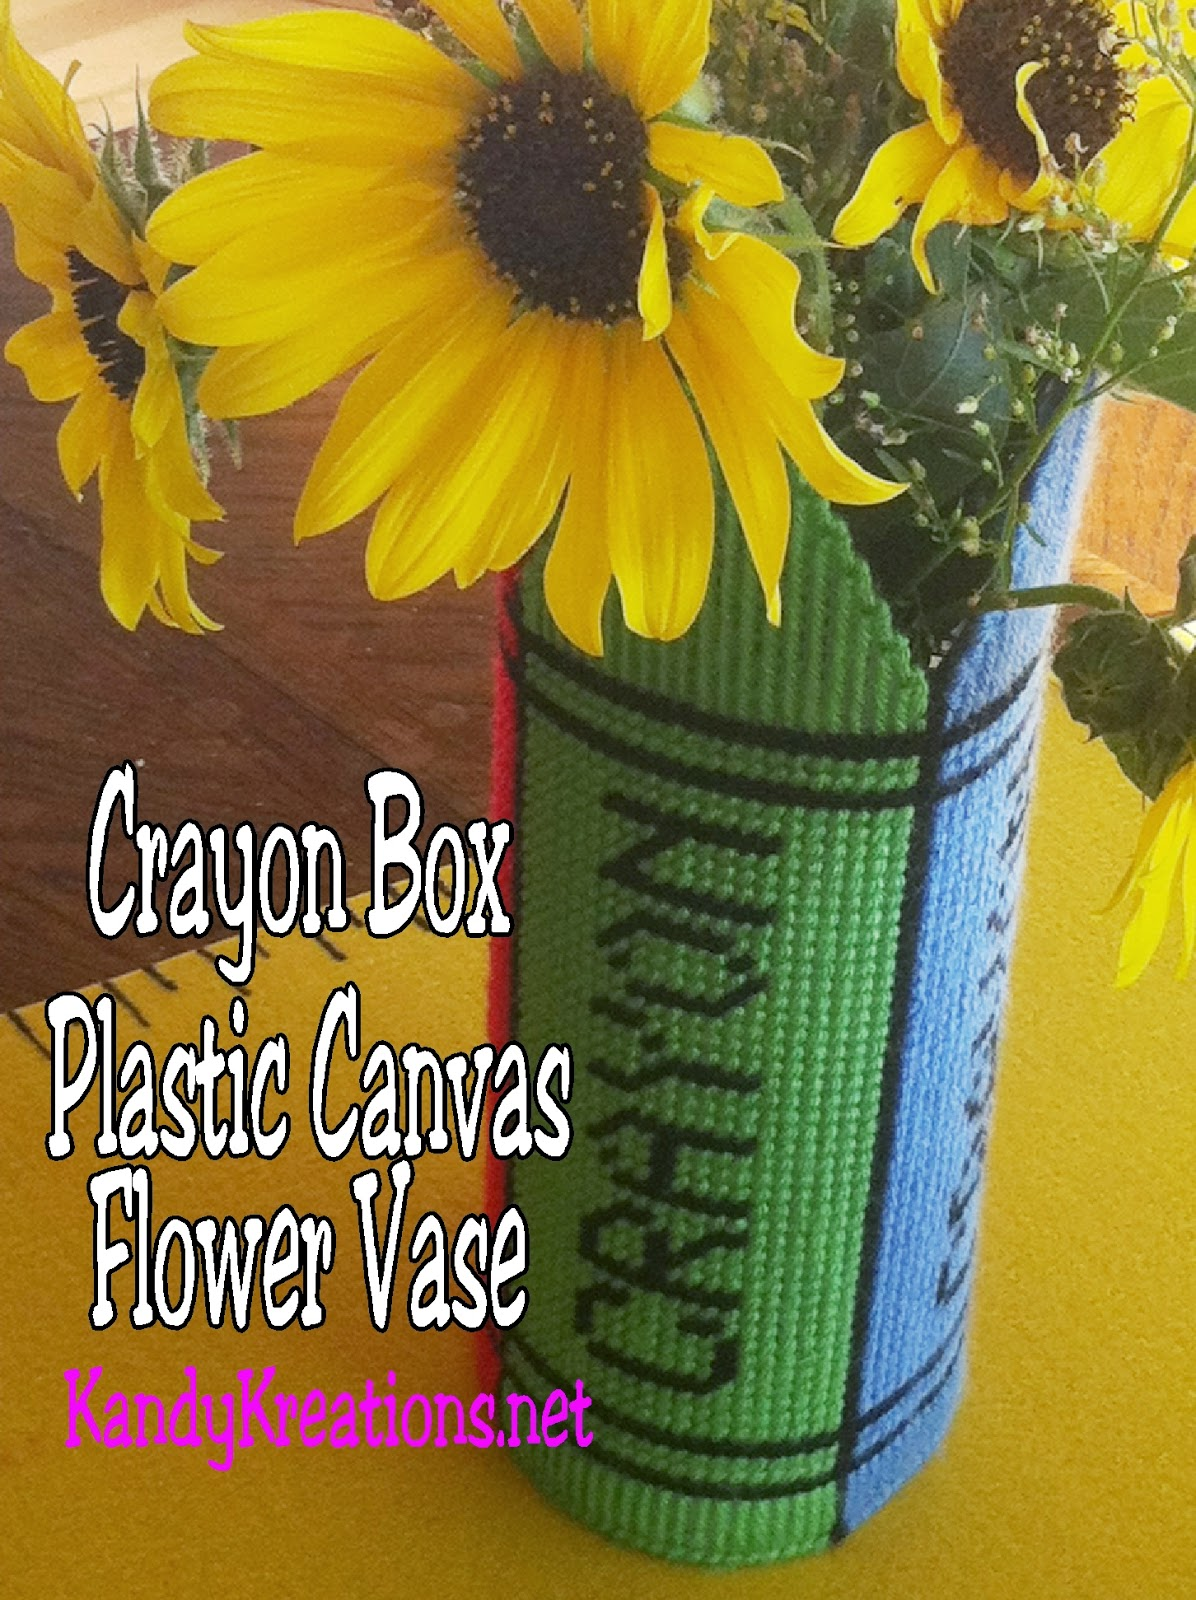 Crayon Box Plastic Canvas Flower Vase Pattern by Kandy Kreations